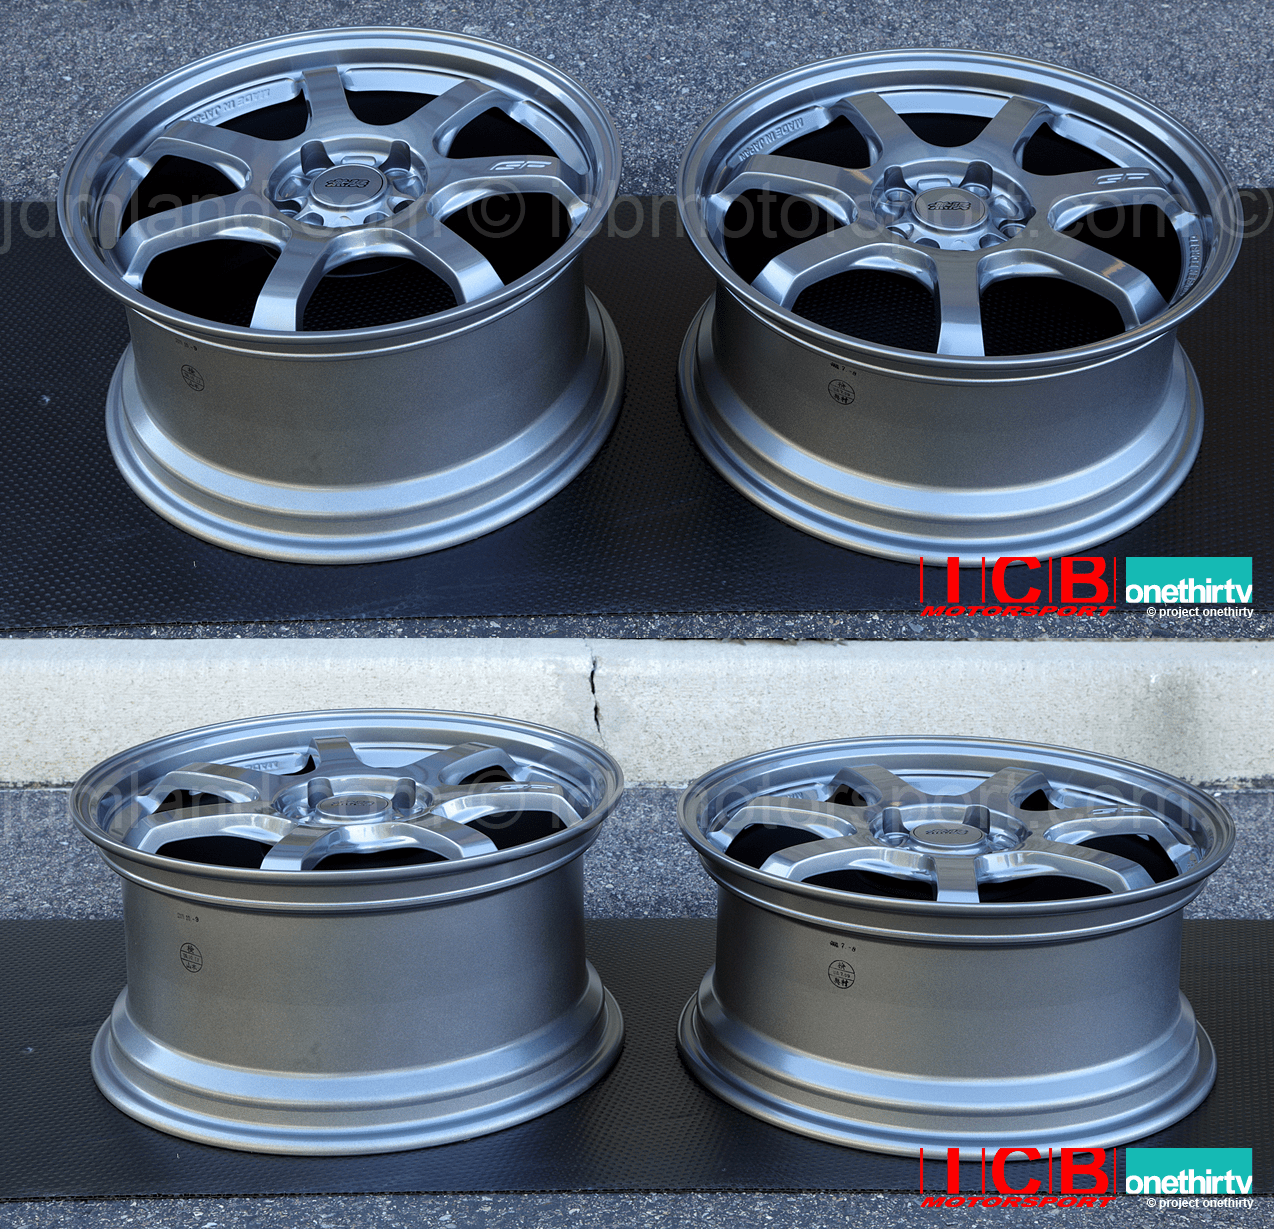 Mugen GP Forged Wheel Gun Metallic Finish Honda S2000 AP1/AP2 17X7.5 +52 Offset 17X8.5 +59 Offset